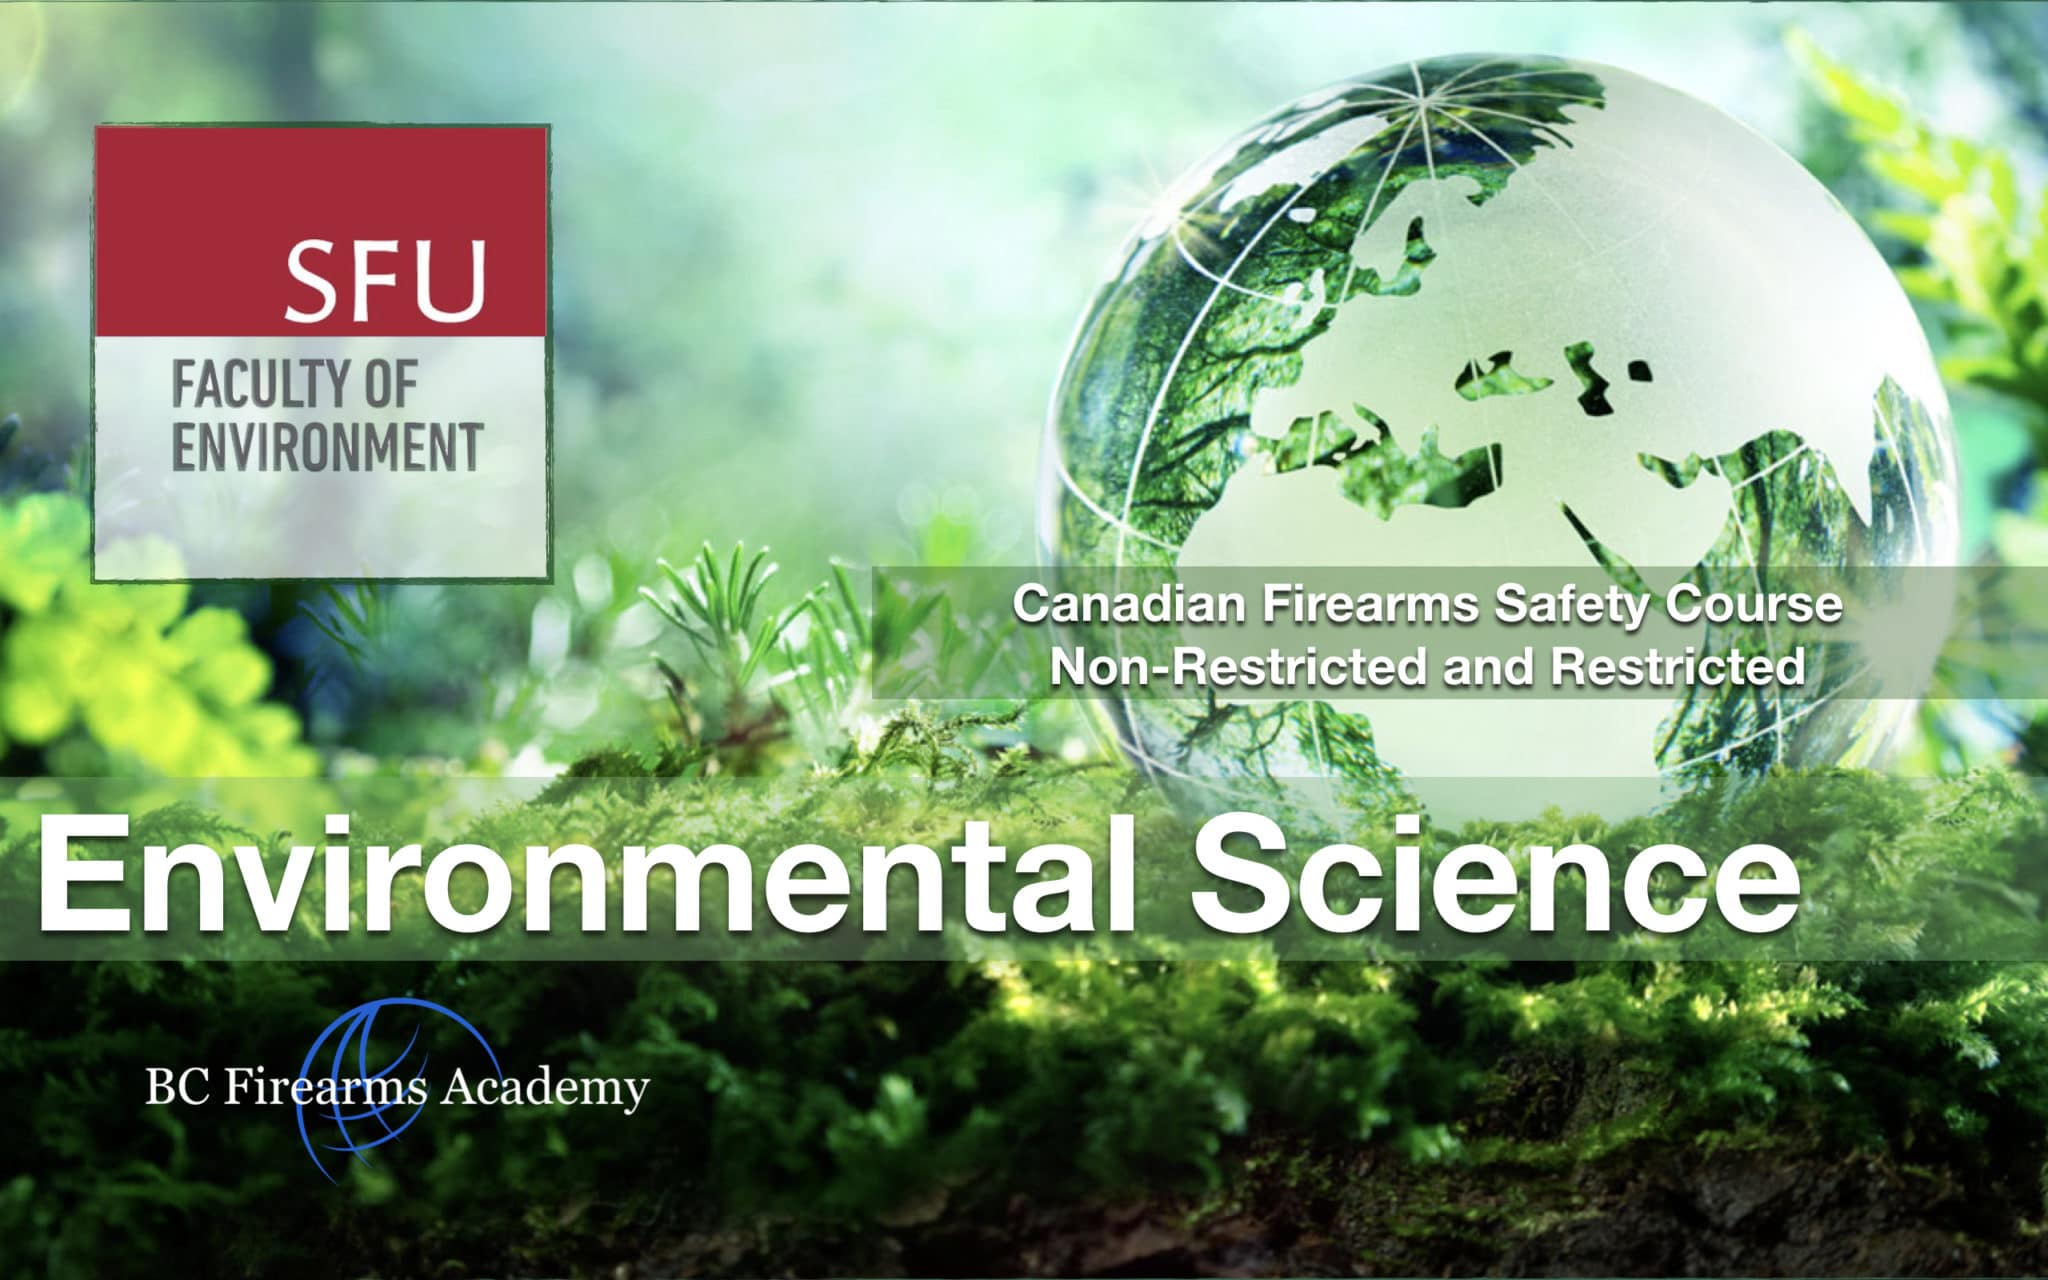 Canadian Firearms Safety Course & Restricted Safety Course JIBC Feb 2 & 3SFU Environmental Science